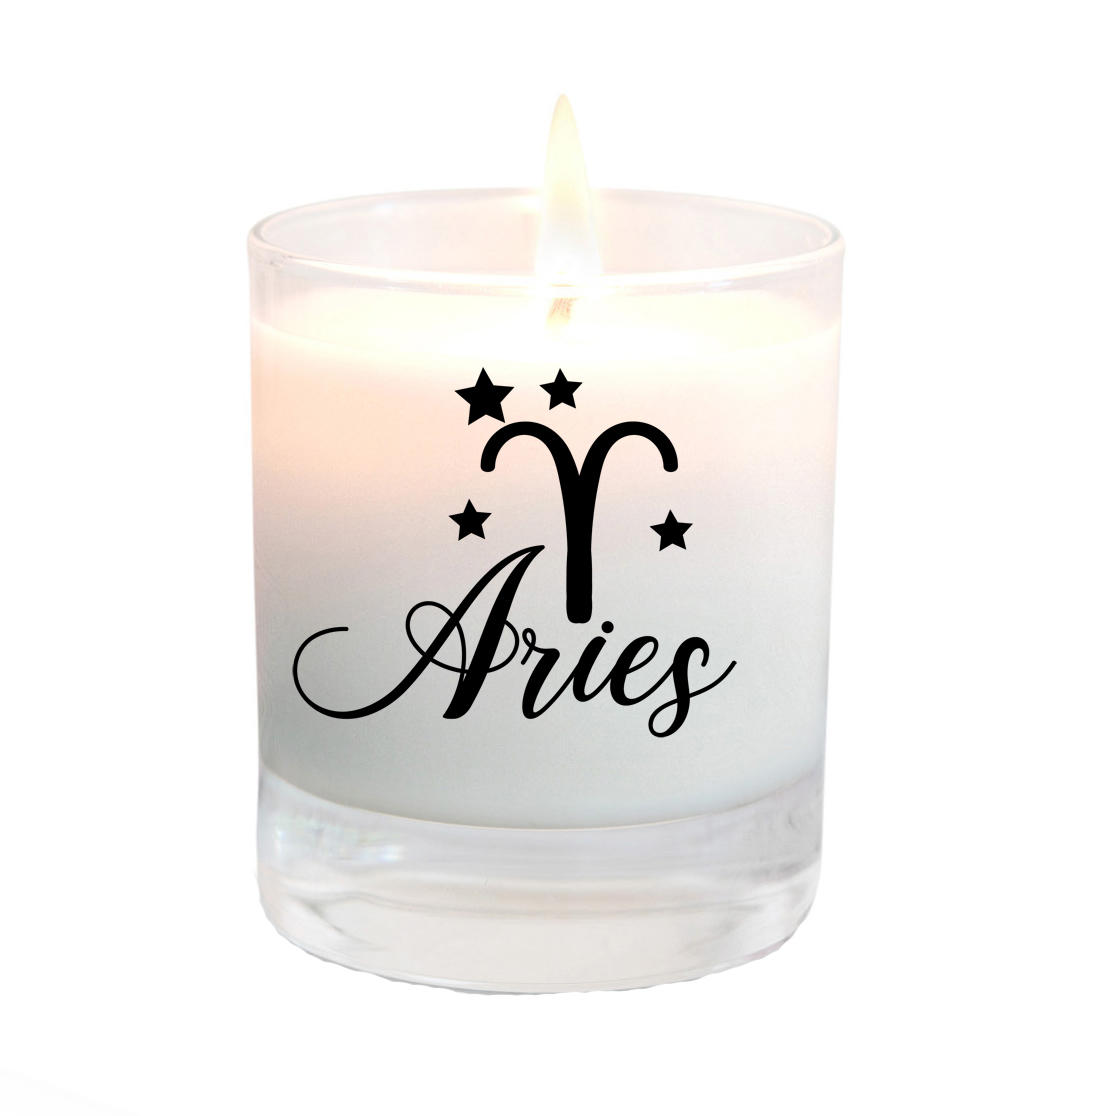 Aries candle gift